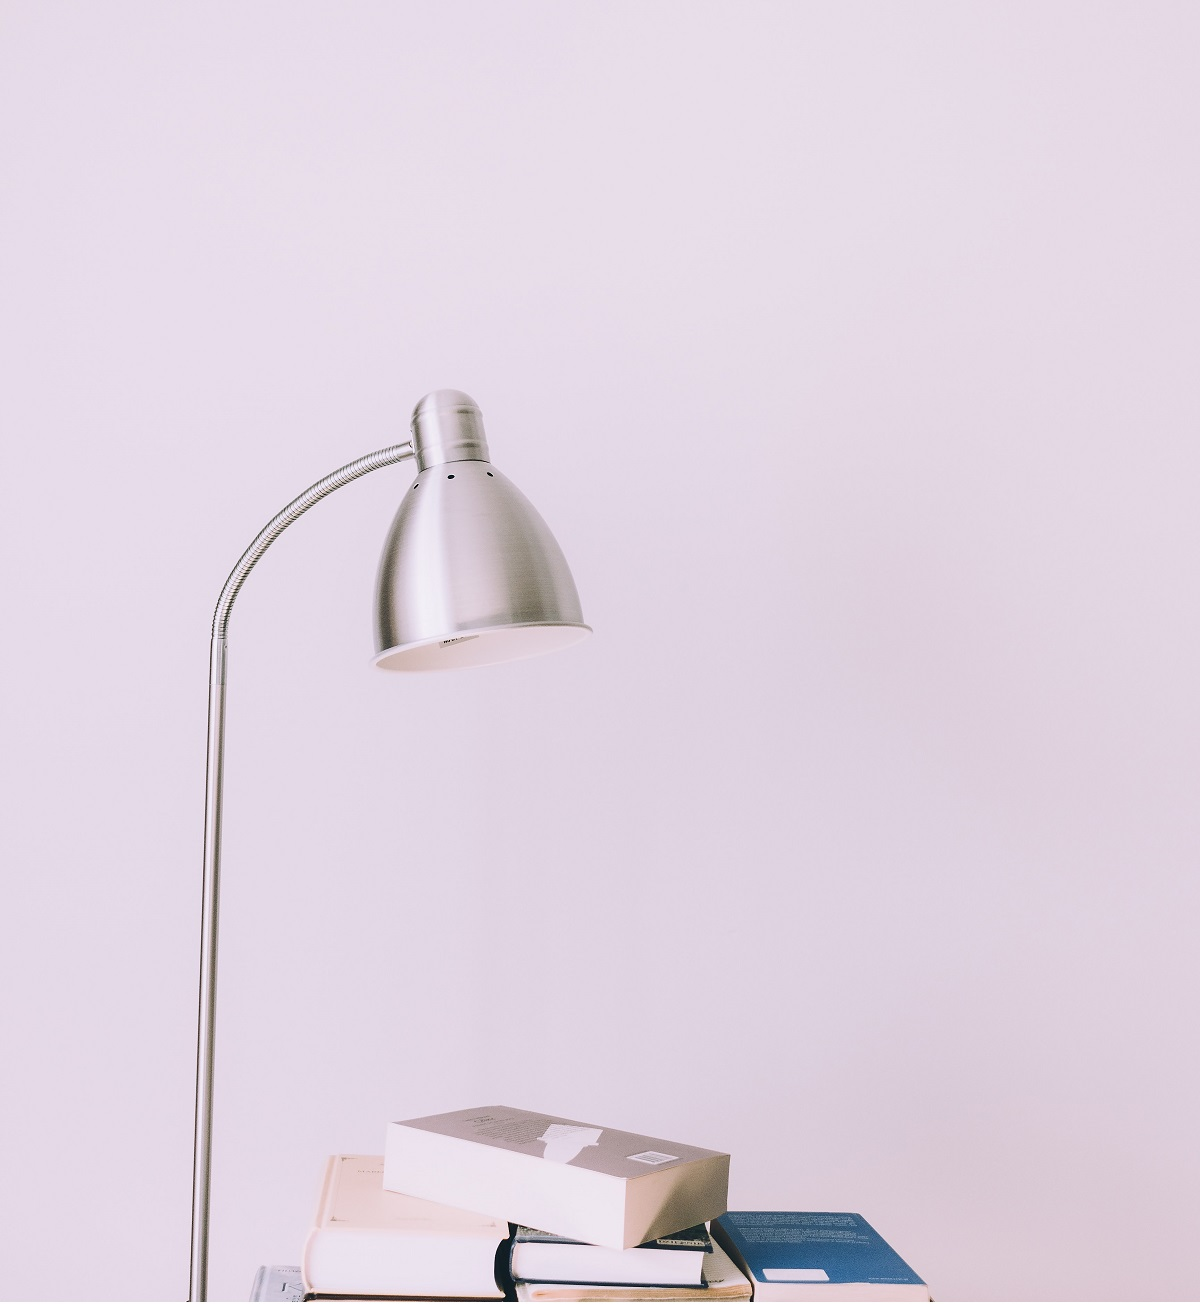 books-bright-contemporary-1122530